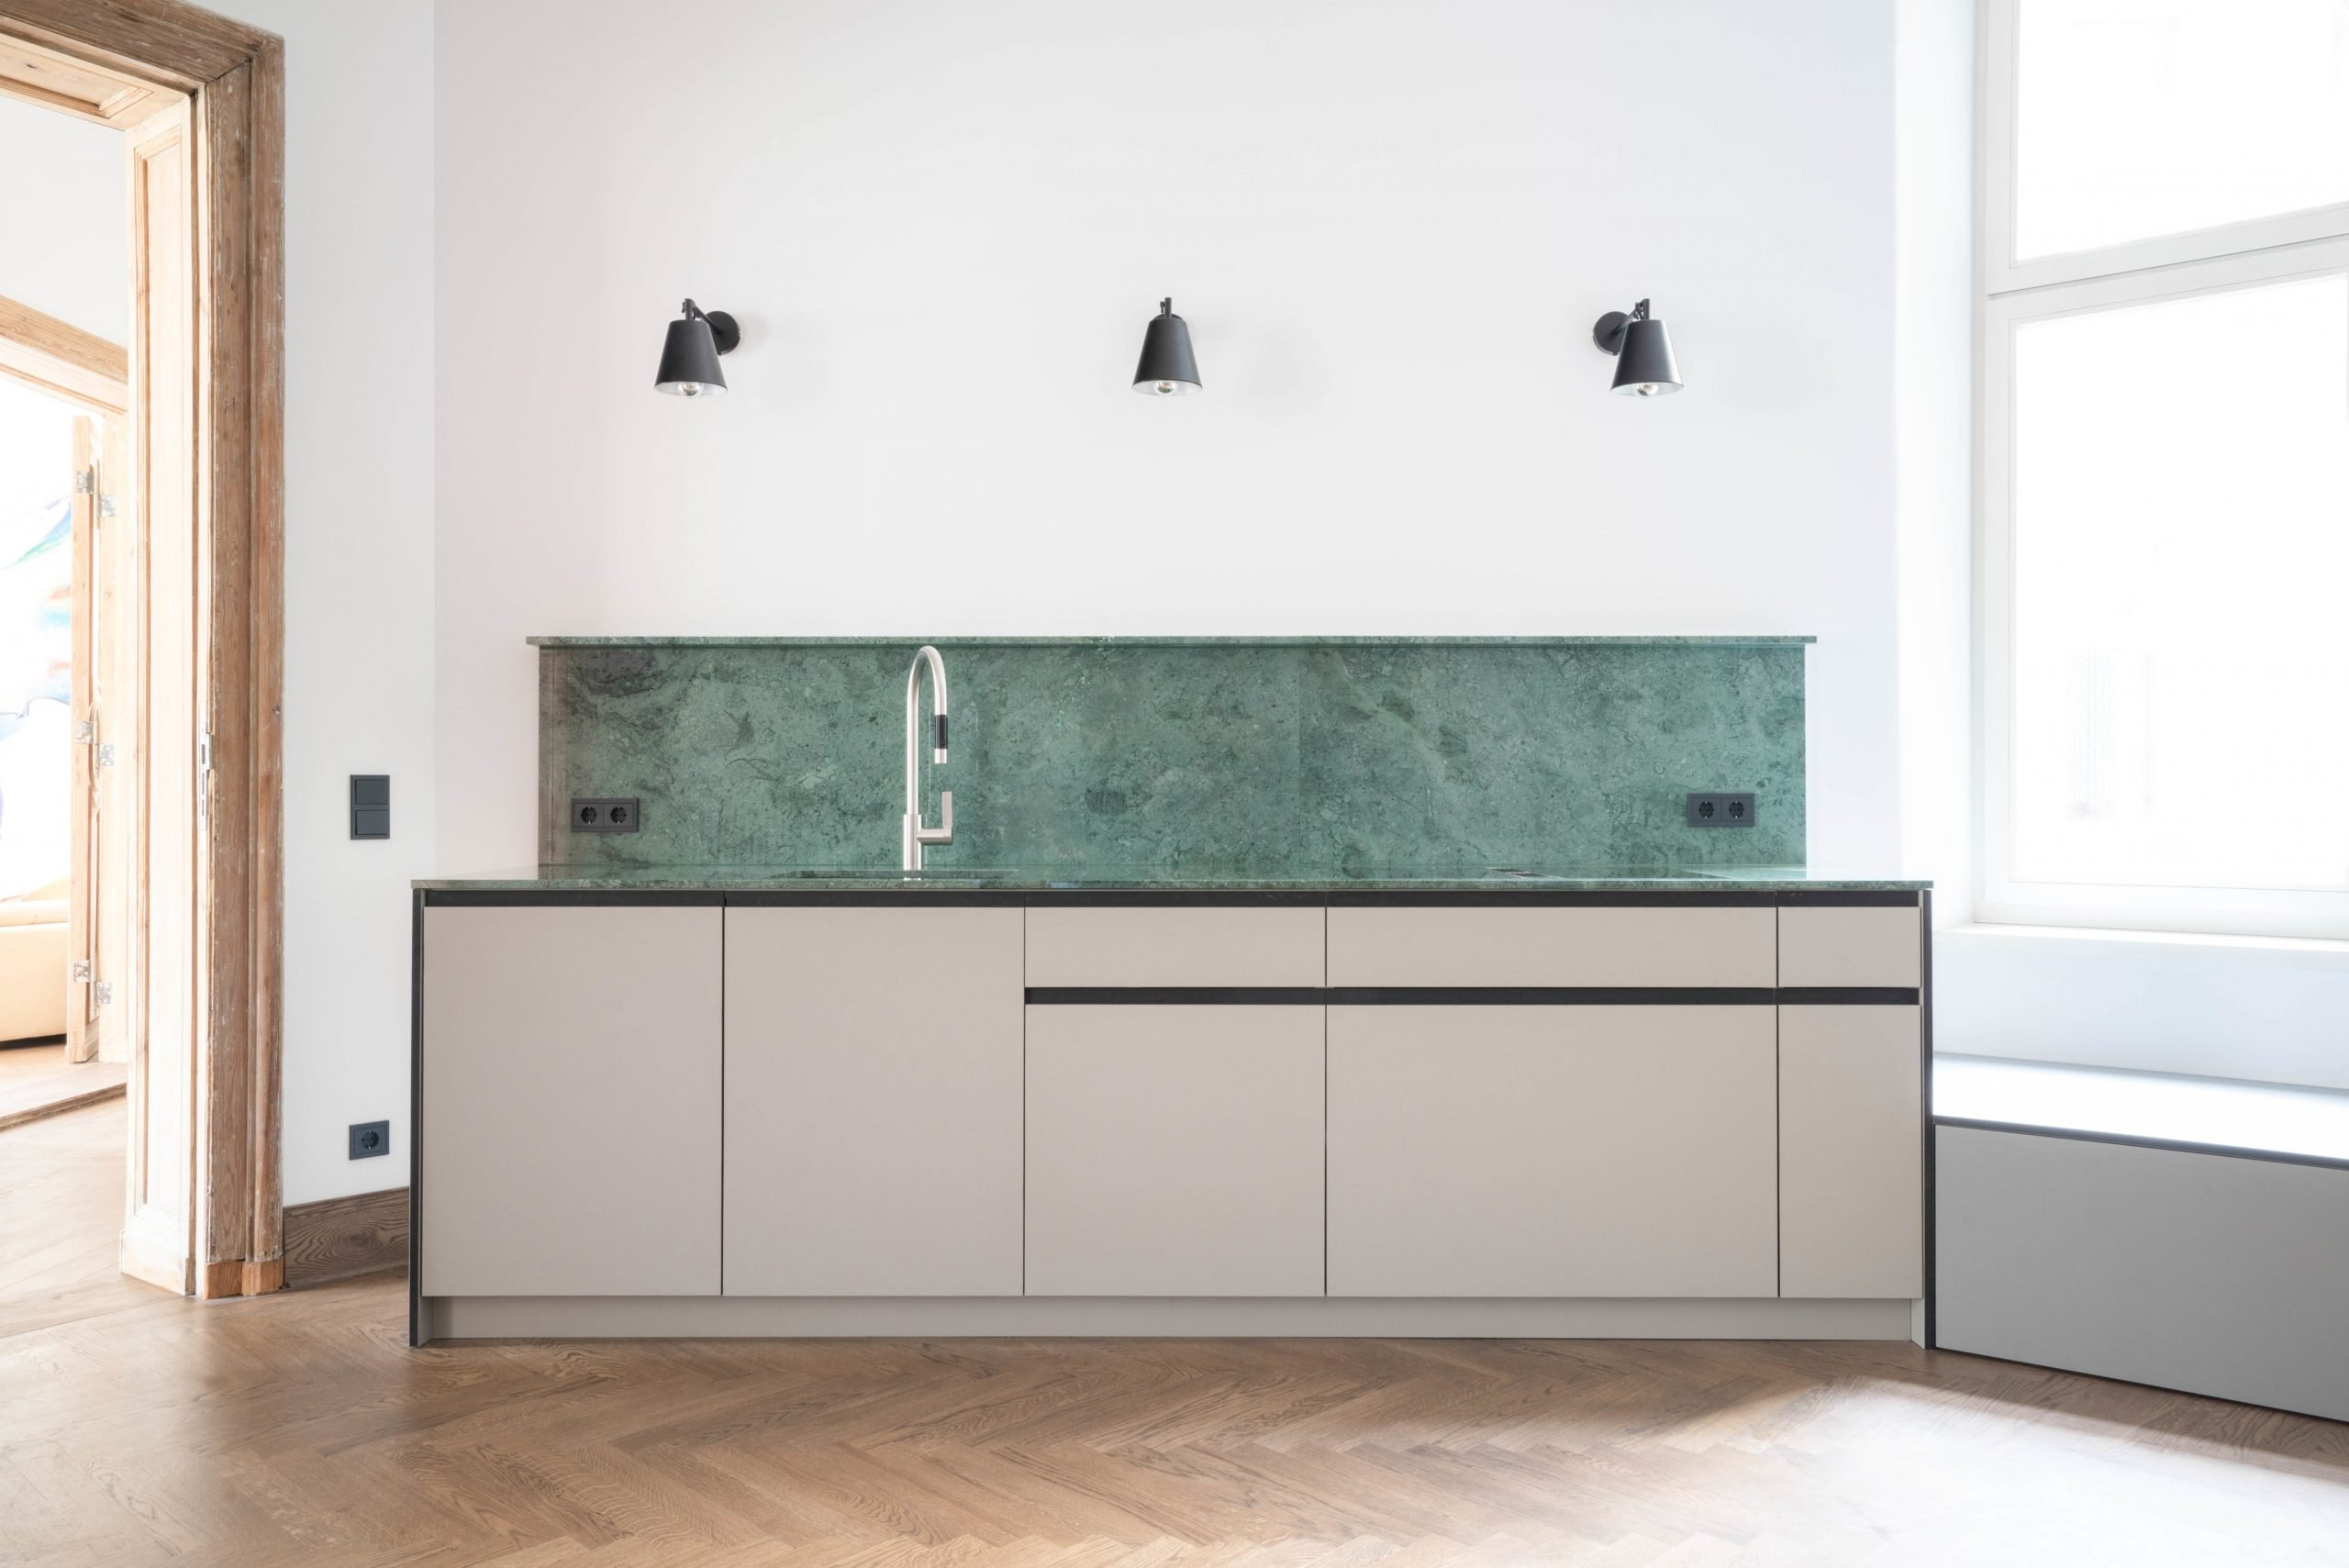 JMS Kitchen - Green Carrara marble counter top